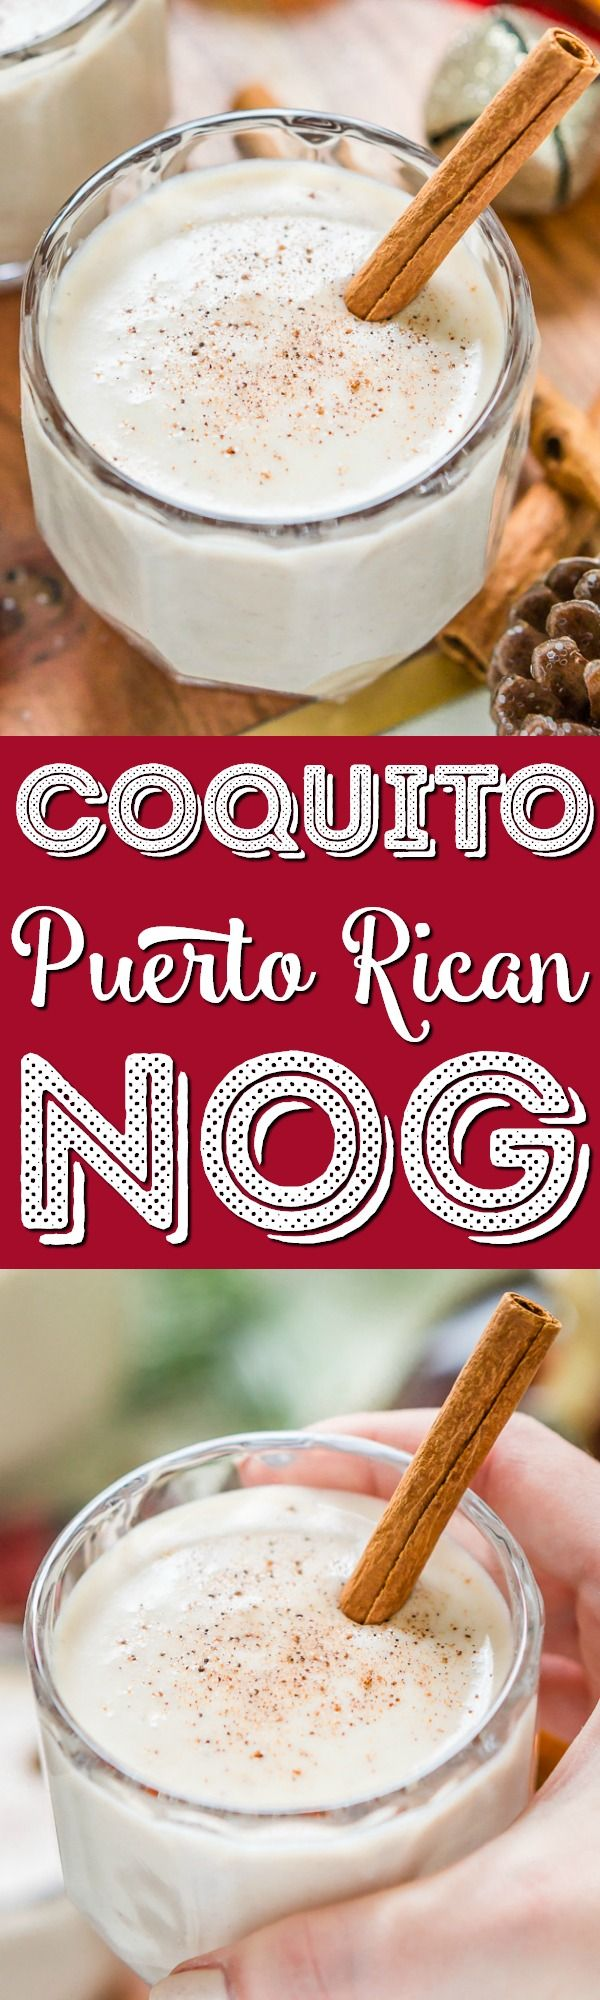 This Coquito recipe is a creamy and rich coconut-based Puerto Rican cocktail similar to an eggnog and a deliciously thick holiday drink loaded with spices and rum! #ad #Exceptional #DonQRum